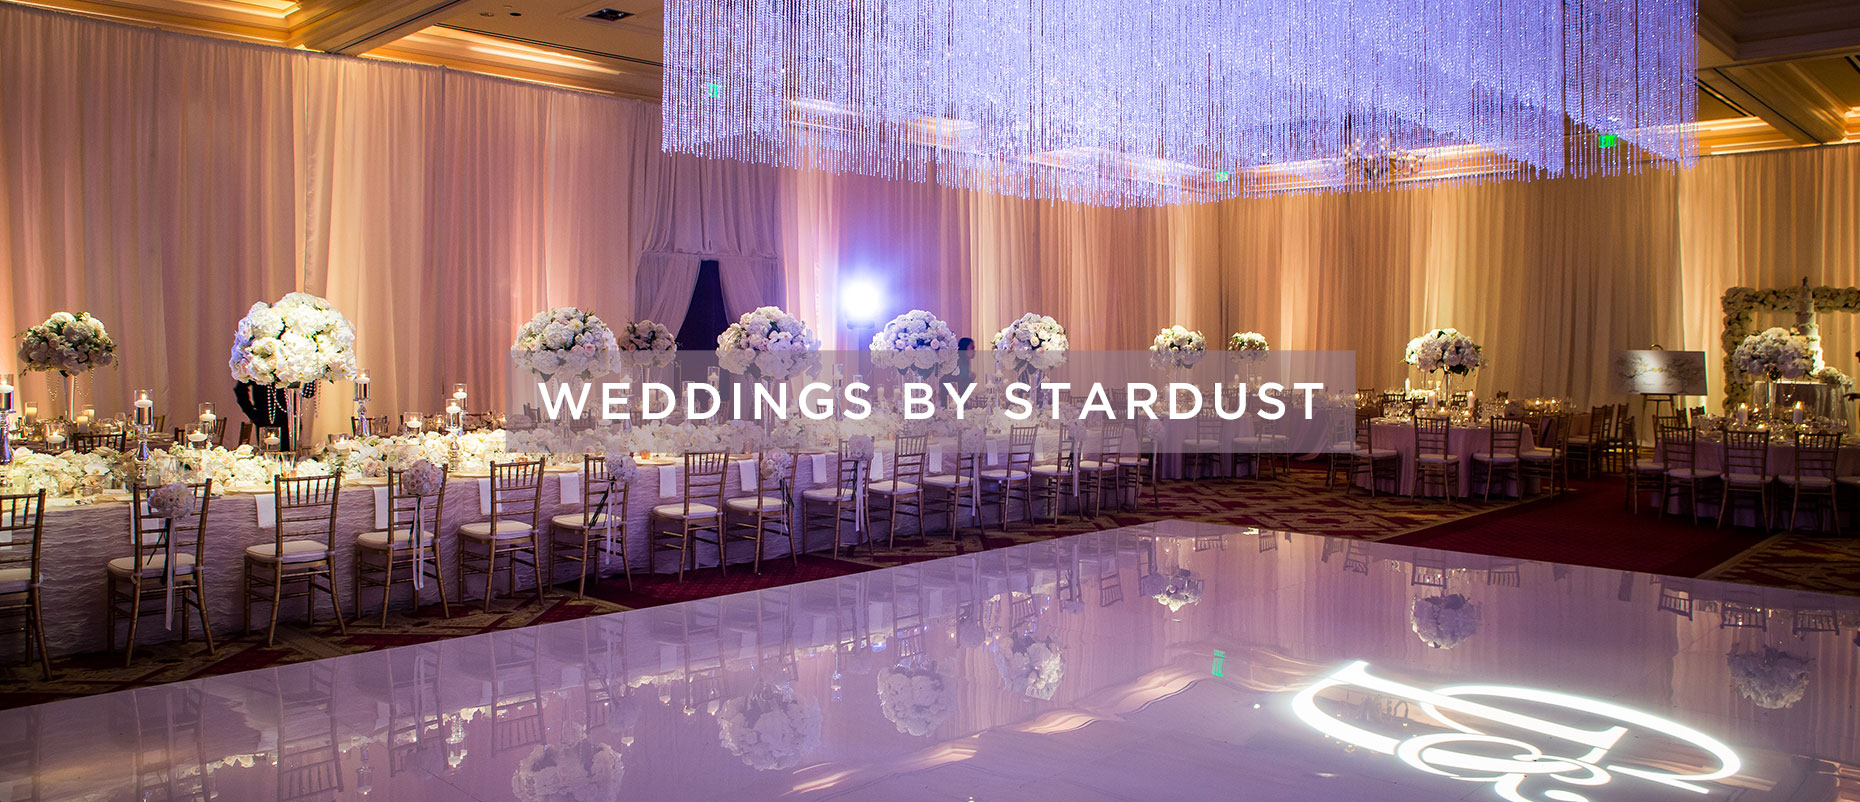 Weddings by stardust your dallas fort worth texas wedding planners slide background junglespirit Choice Image